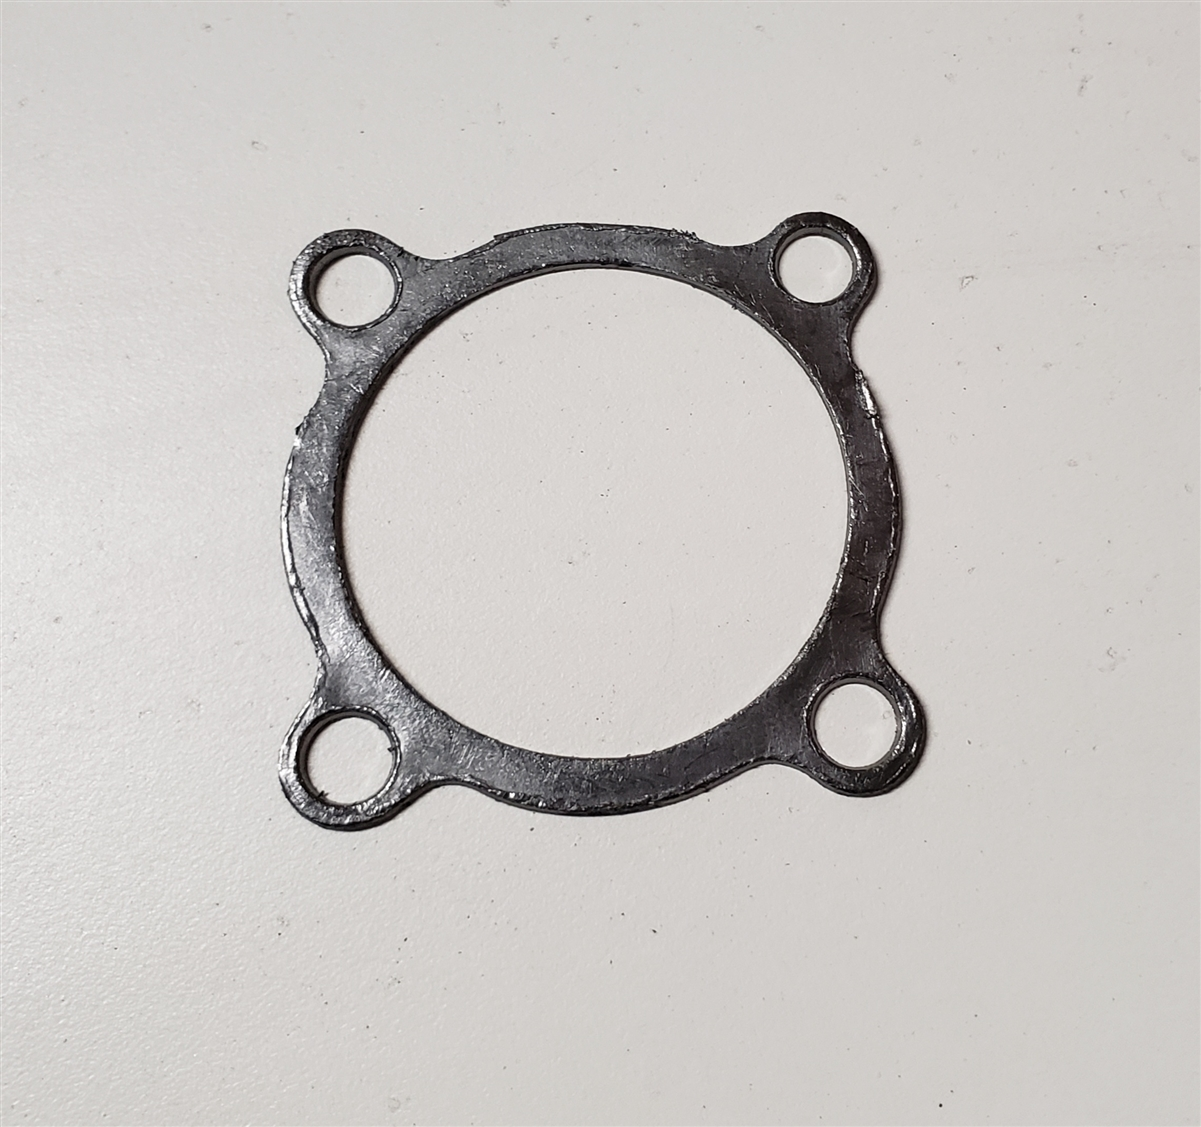 4 bolt gasket for Empire Industries Exhaust